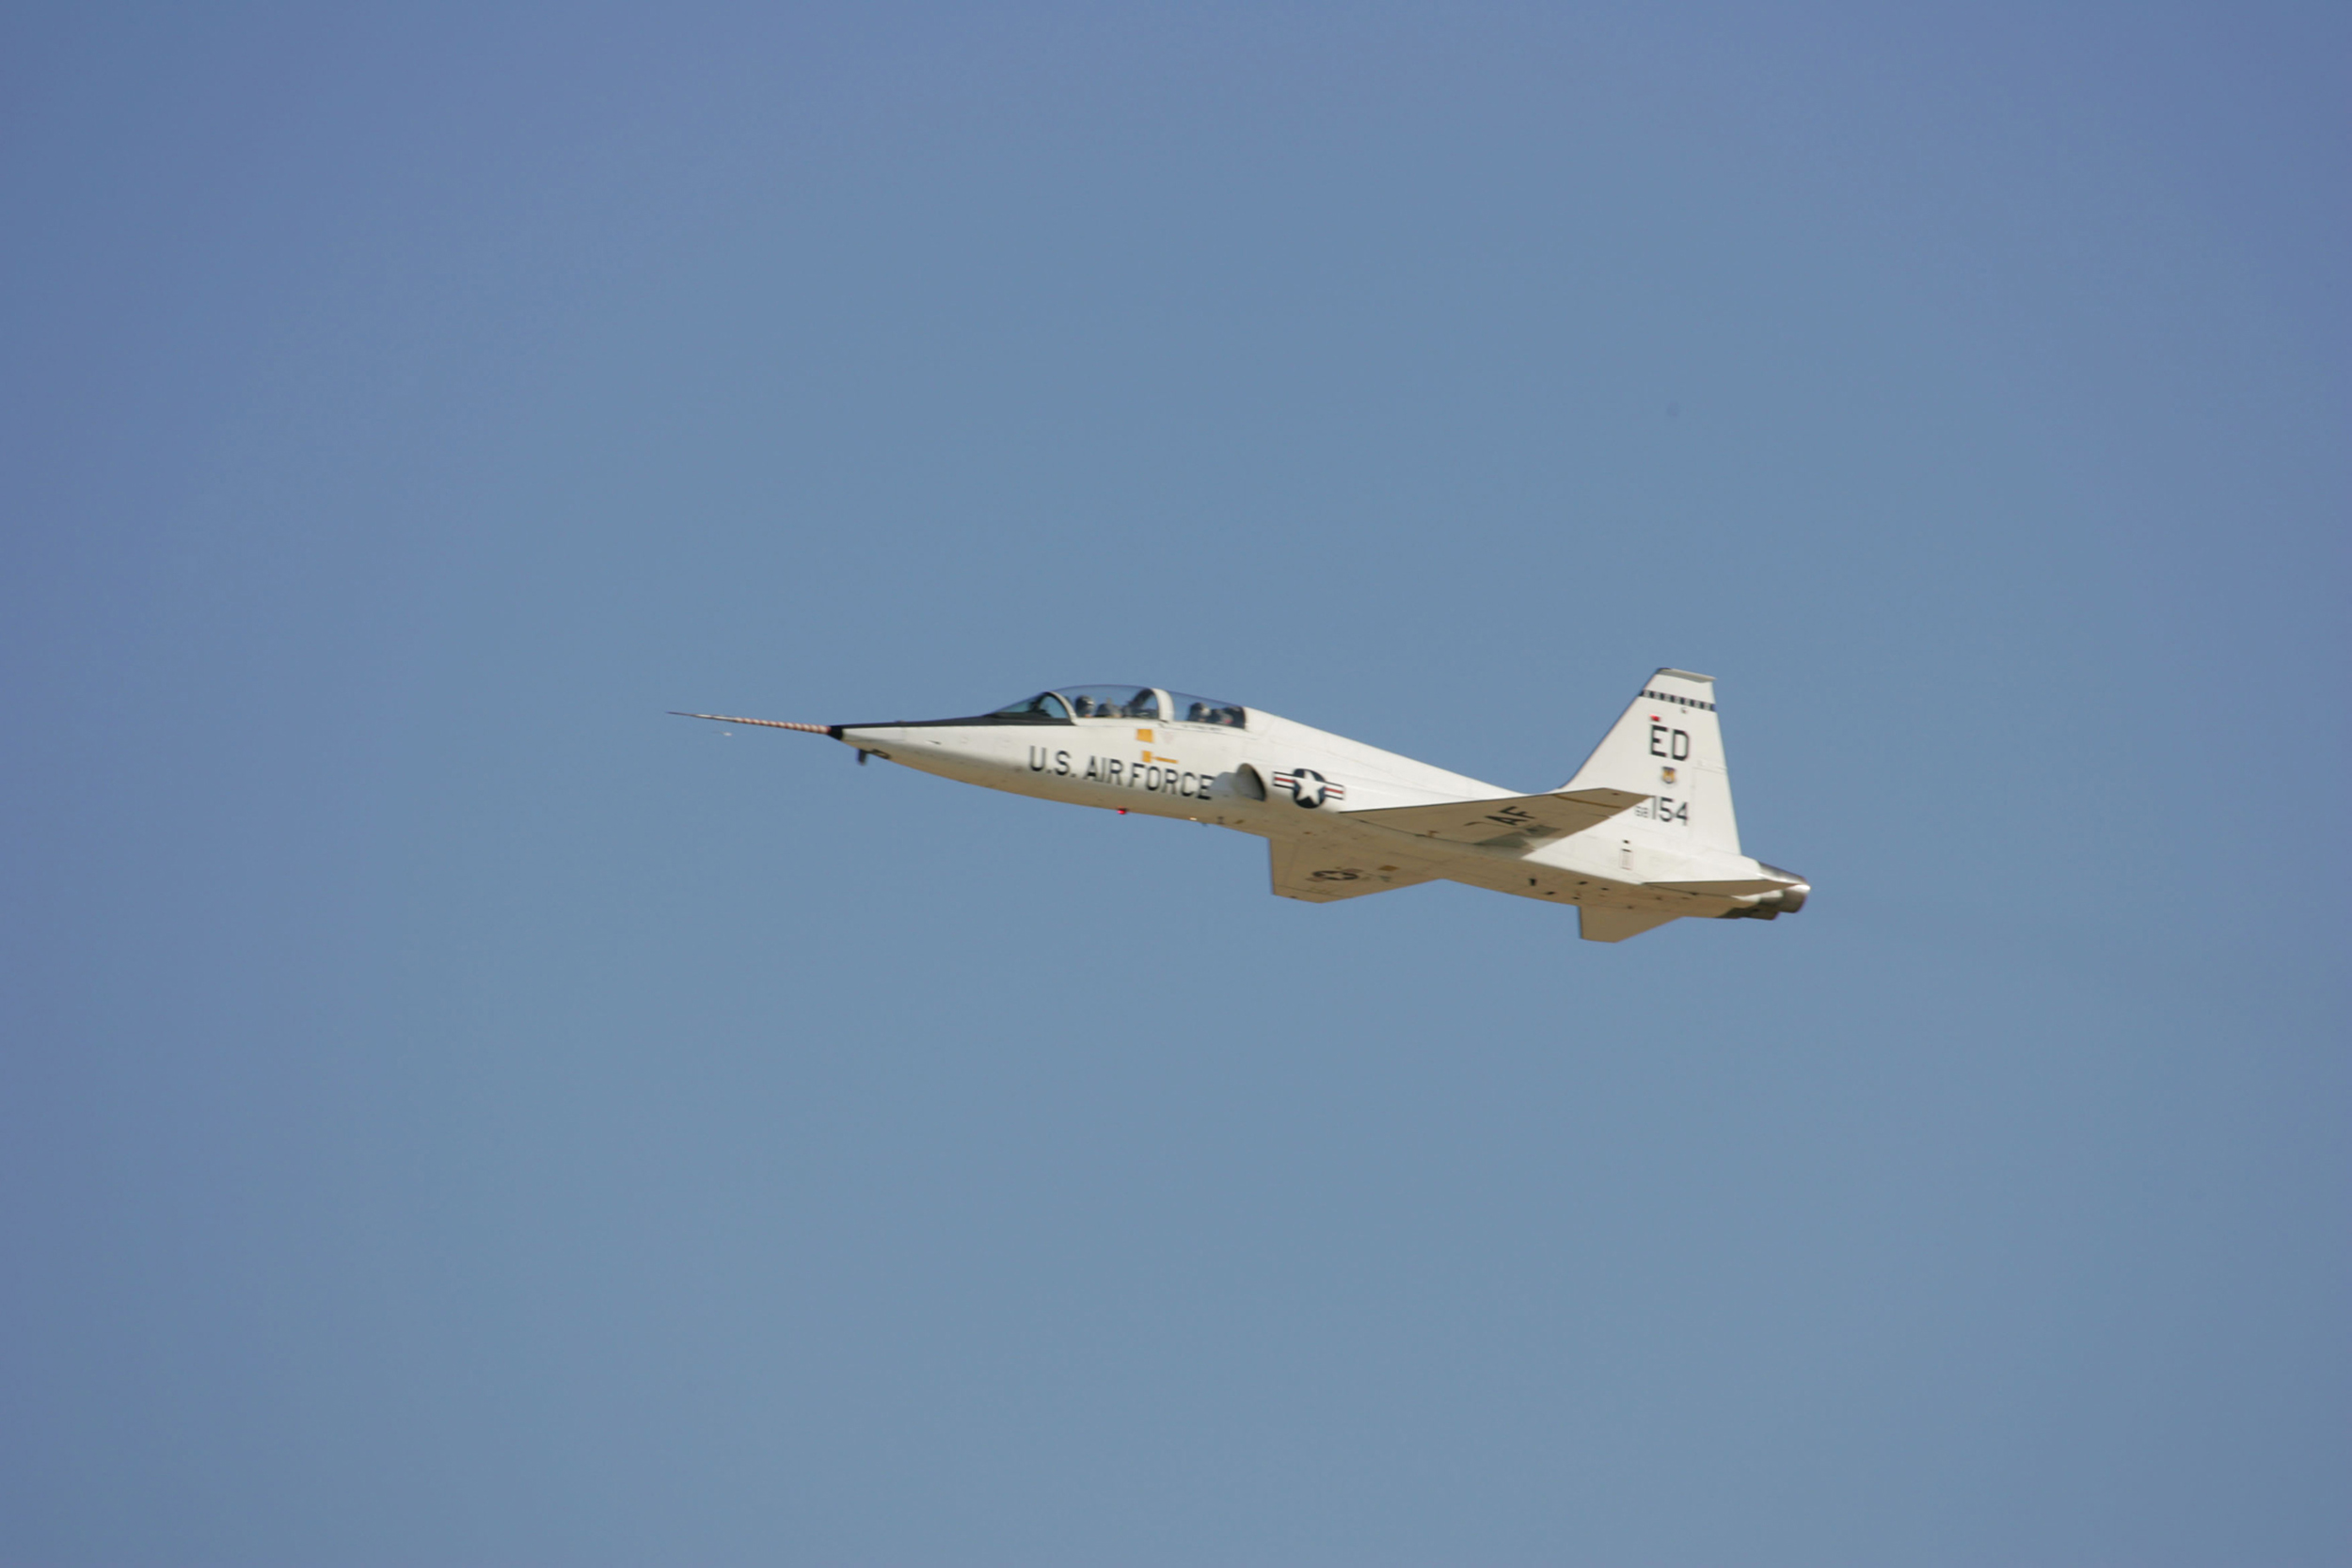 Image: NASA T-38 Trainer aircraft takes off from Edwards Air Force Base in California.